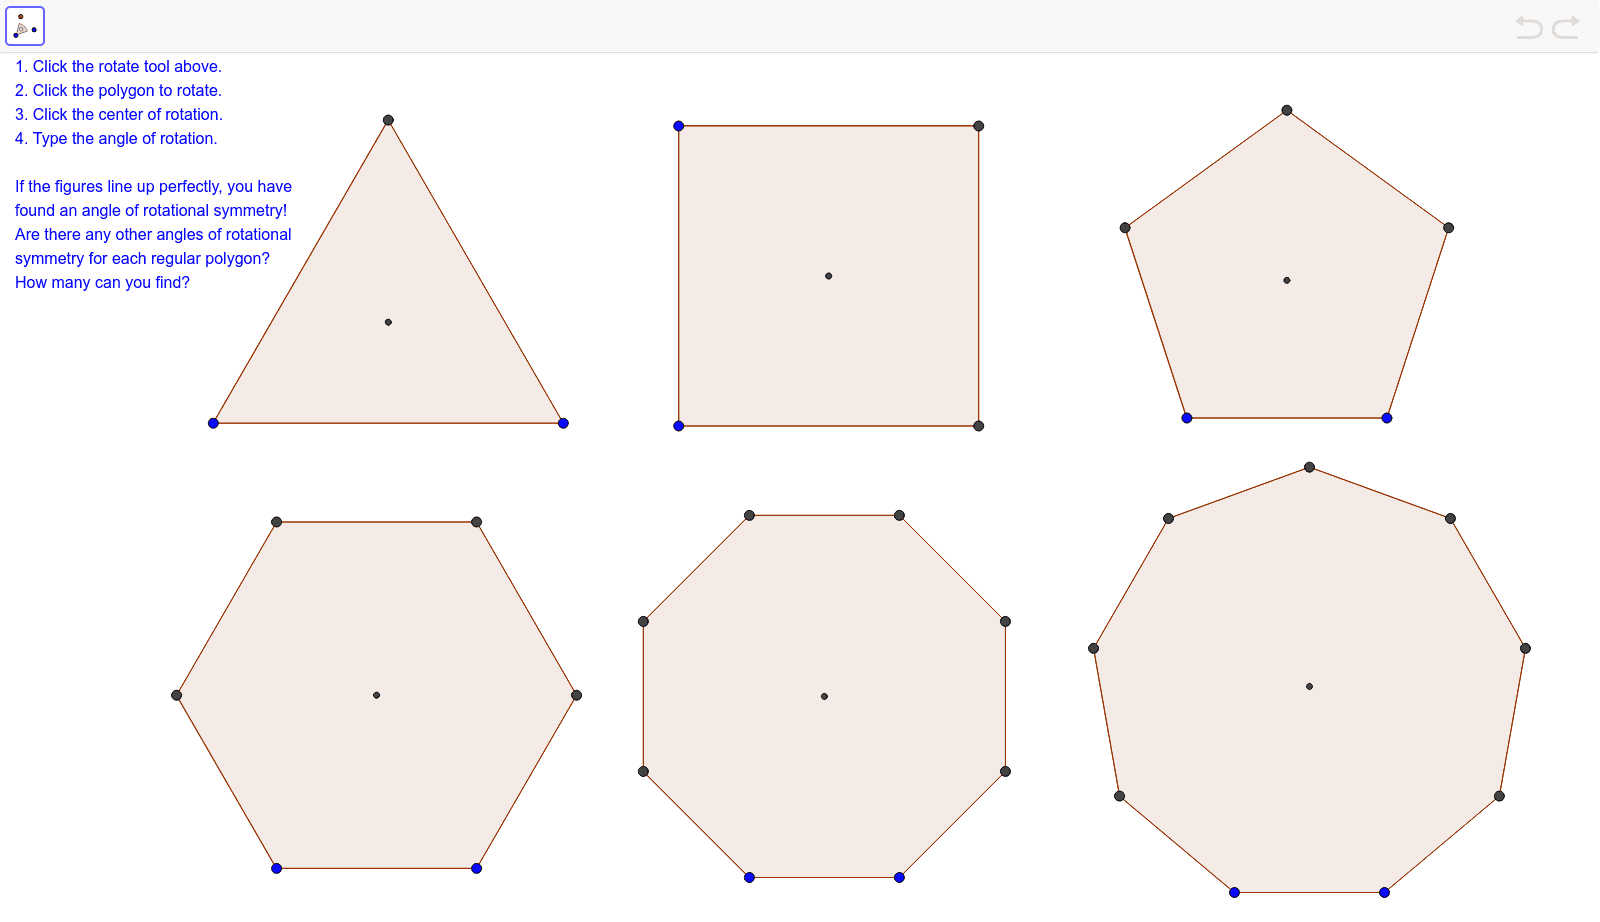 Find the smallest angle that rotates each regular polygon onto itself.